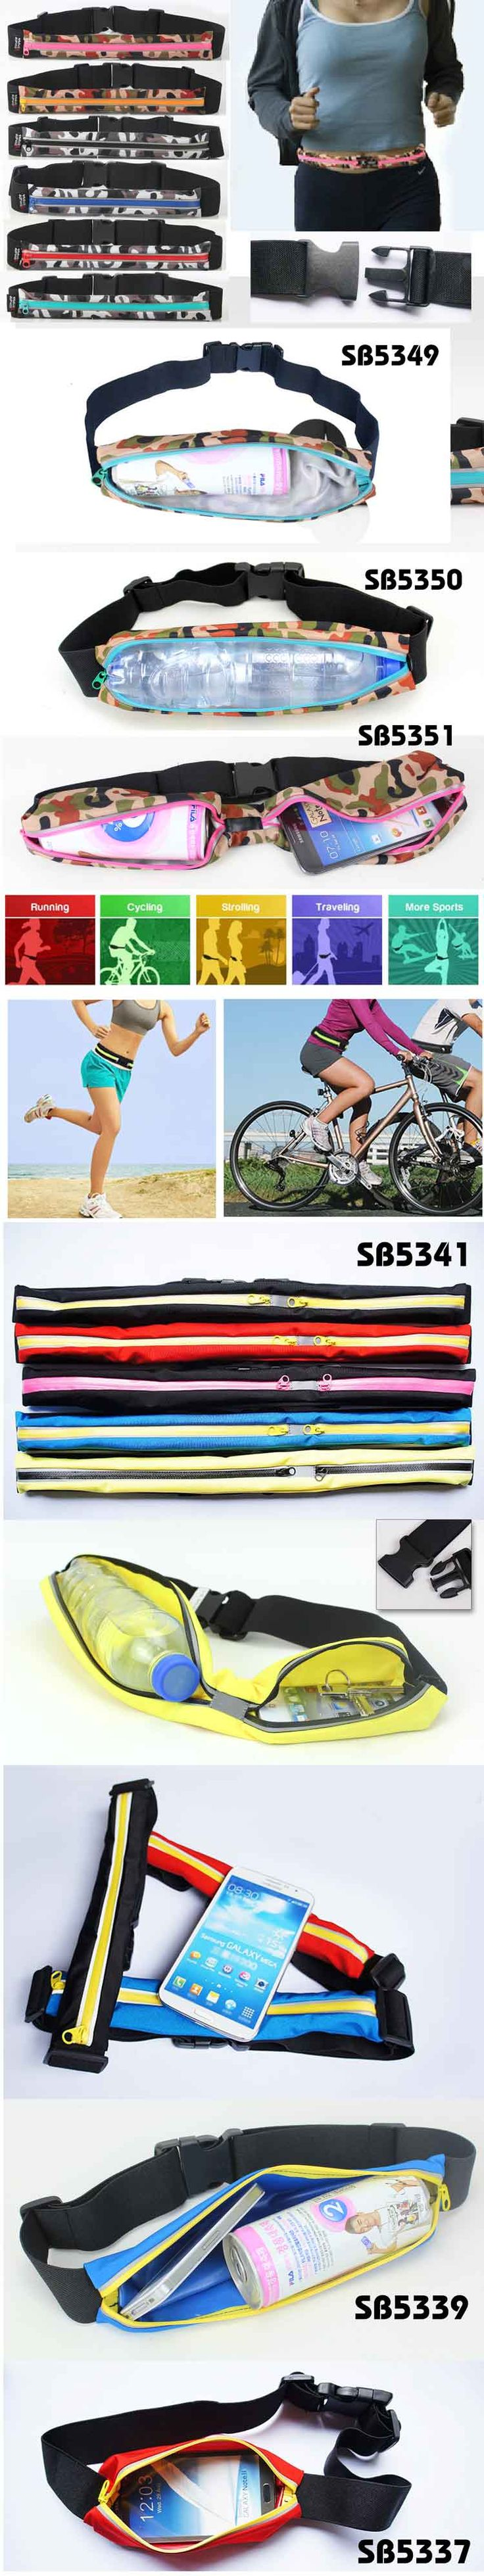 Adjustable elastic colorful durable waist bag series in different size and different  colors   Description: with two zipper pocket design It can hold mobile phones, keys and other small personal items. Made of high flexible polyester material, durable and comfortable Ideal for you to carry key/phone/cash when jogging, hiking or just out being active, must-Have item for sport enthusiast.   www.ideagroupigm.com